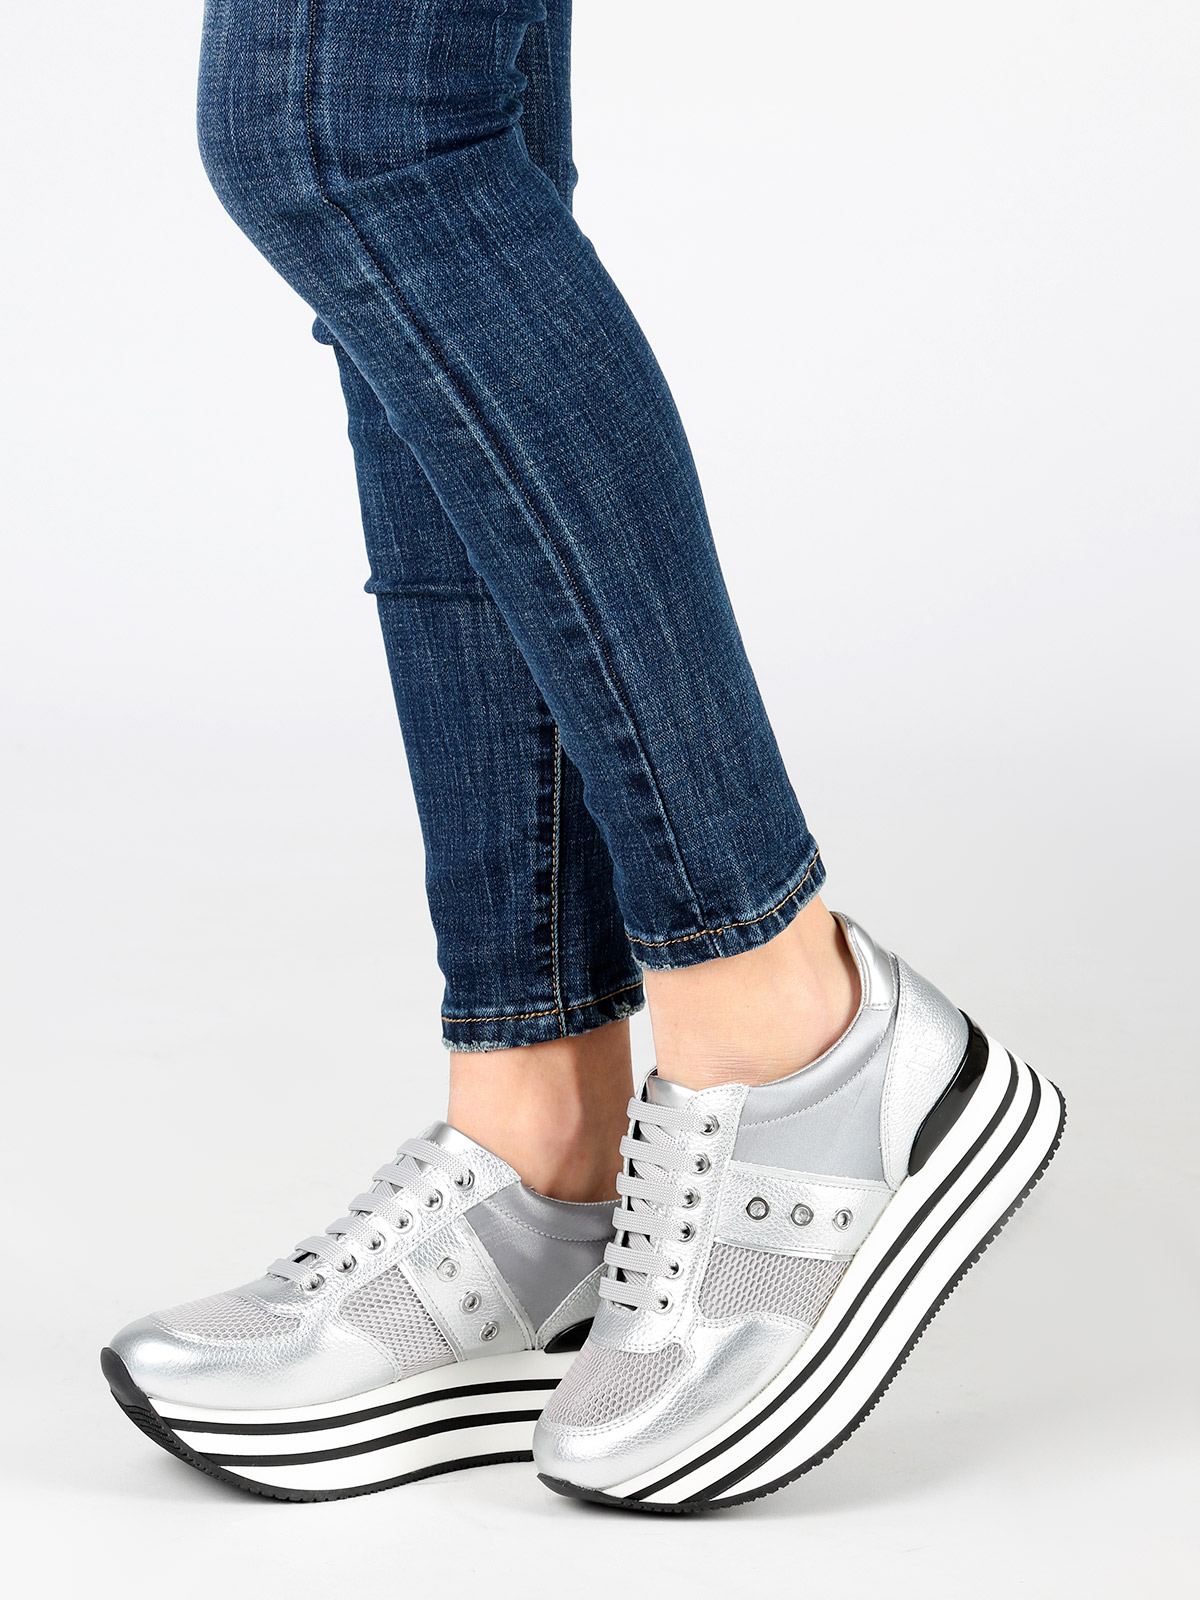 Silver sneakers with high sole